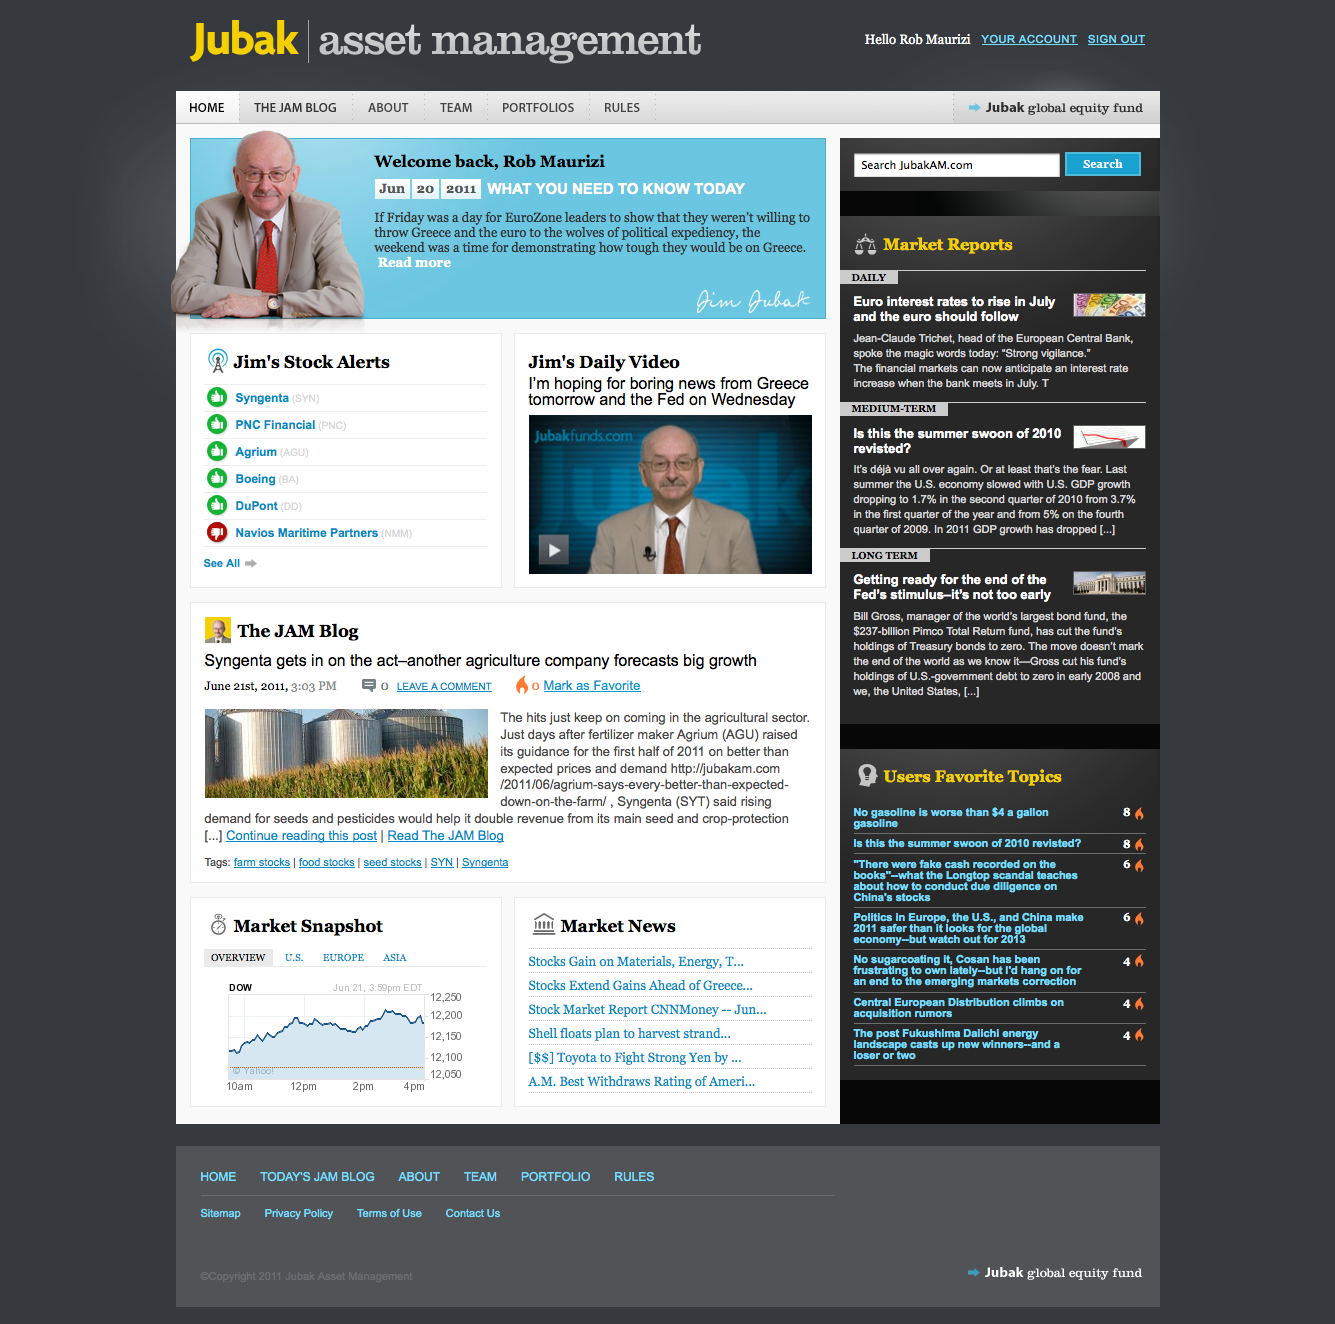 Jubak Asset Management Homepage